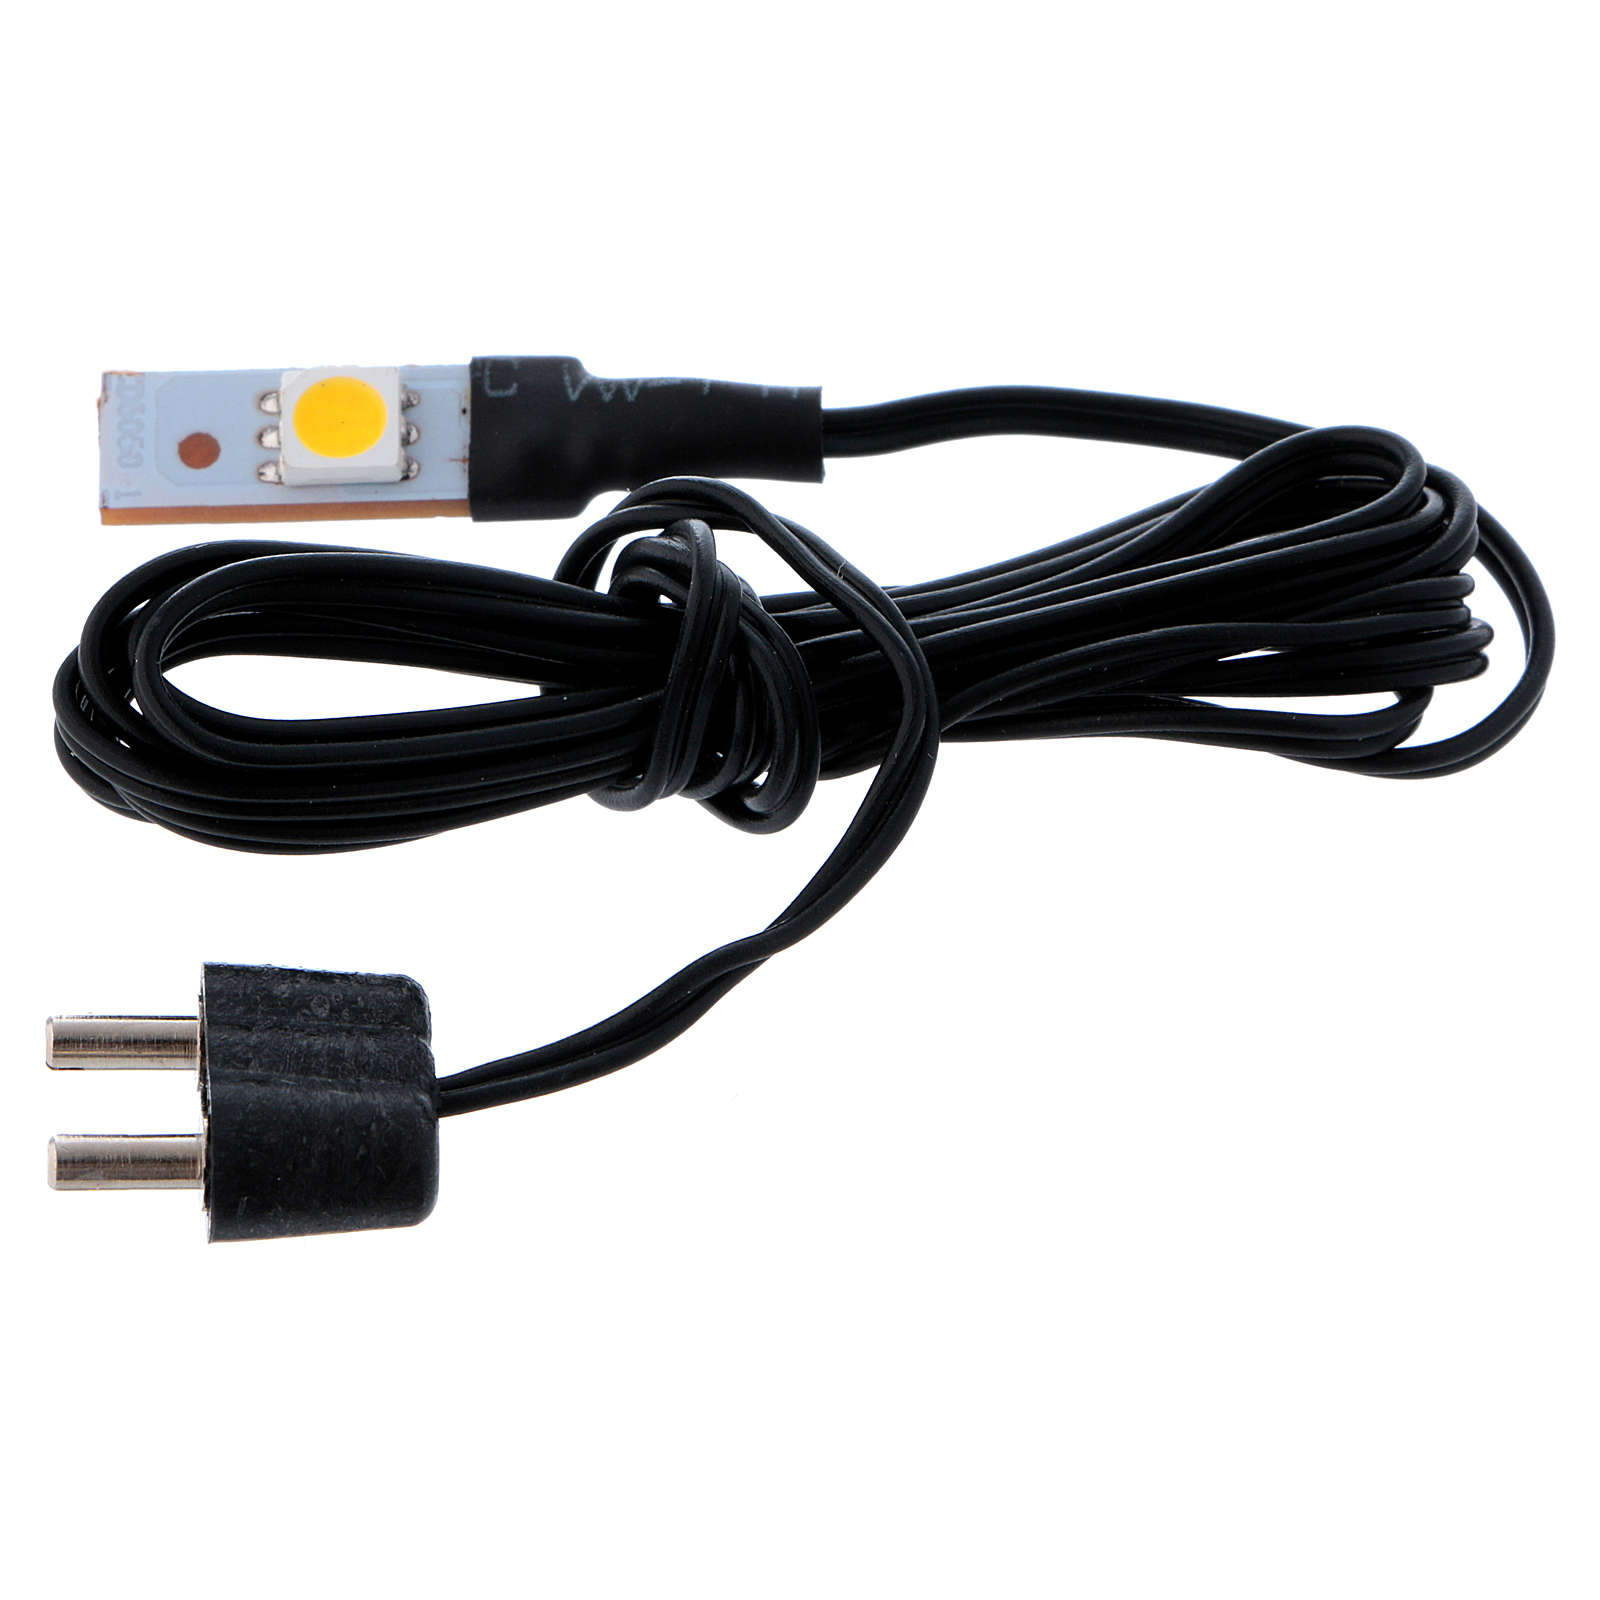 Led blanc plat simple bas voltage 4